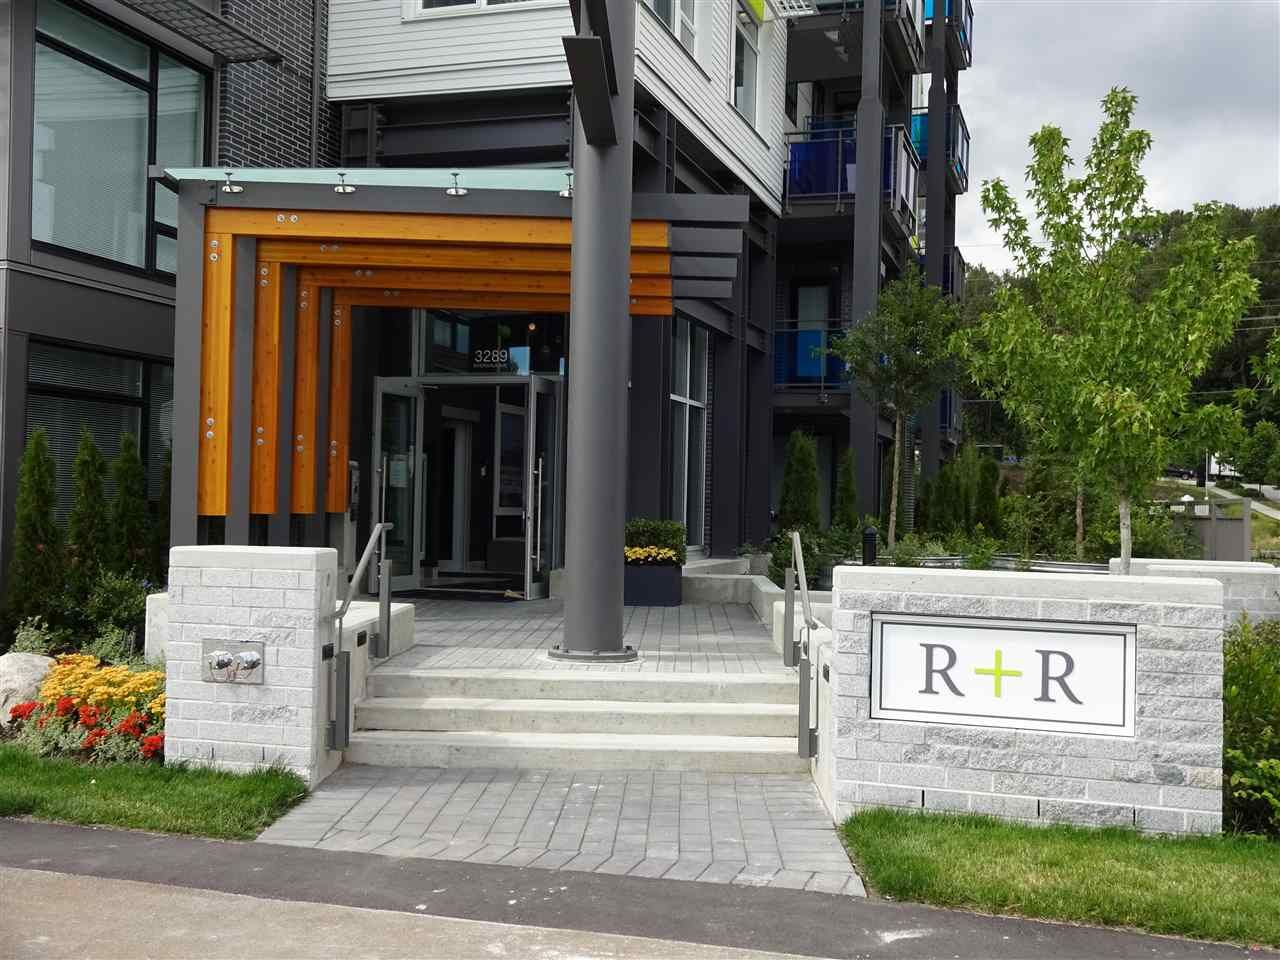 """Main Photo: 604 3289 RIVERWALK Avenue in Vancouver: Champlain Heights Condo for sale in """"R + R by Polygon"""" (Vancouver East)  : MLS®# R2287716"""